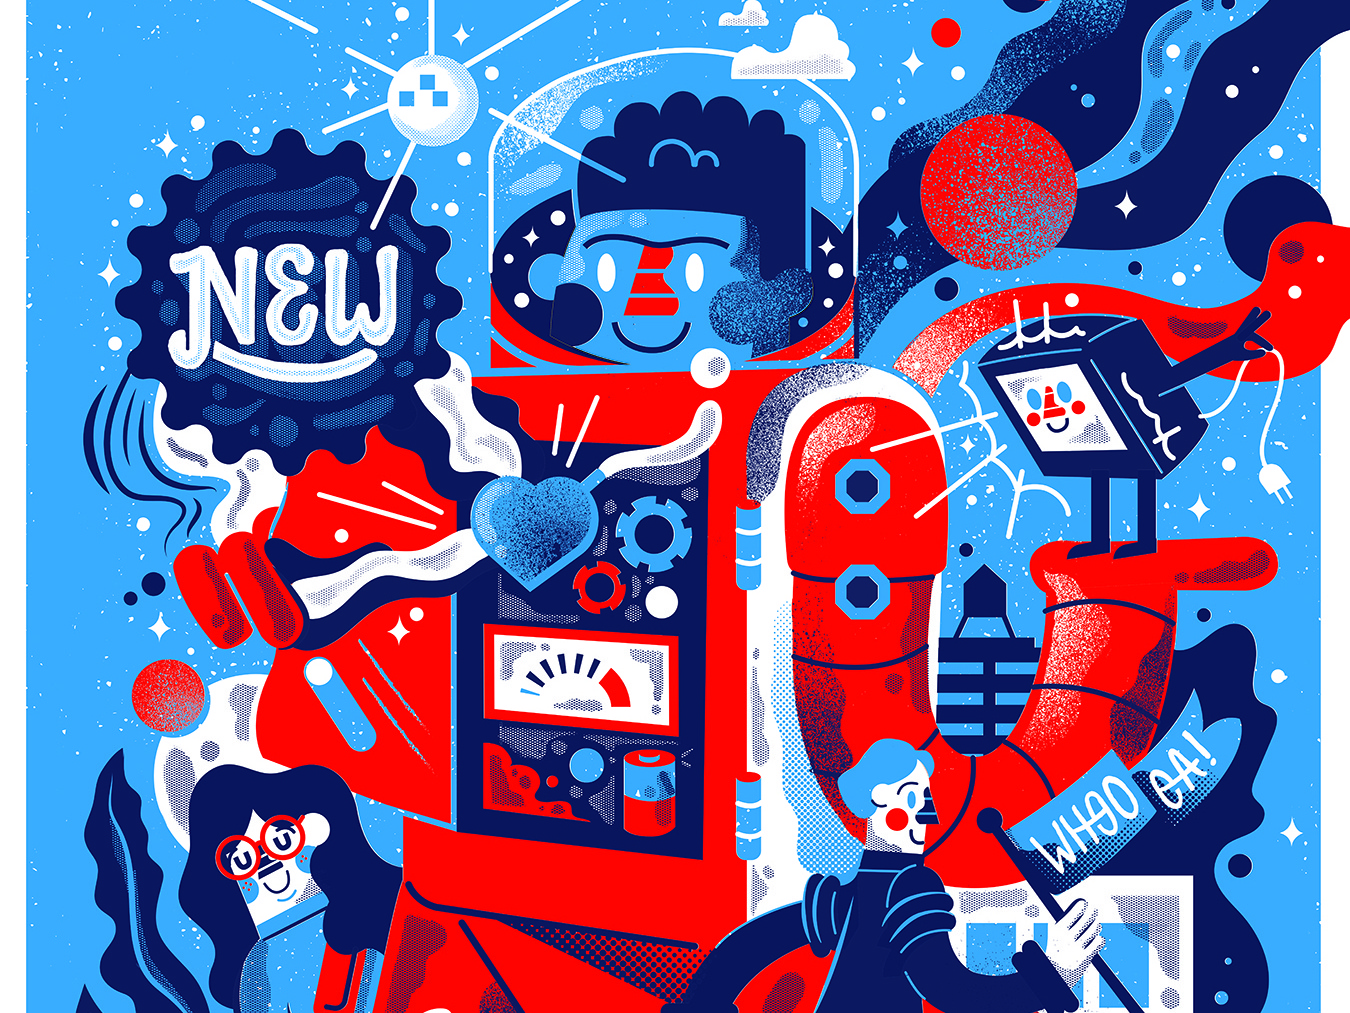 COOOOL! handlettering planets print people graphic design poster illustration space roboto astronauts astronaut